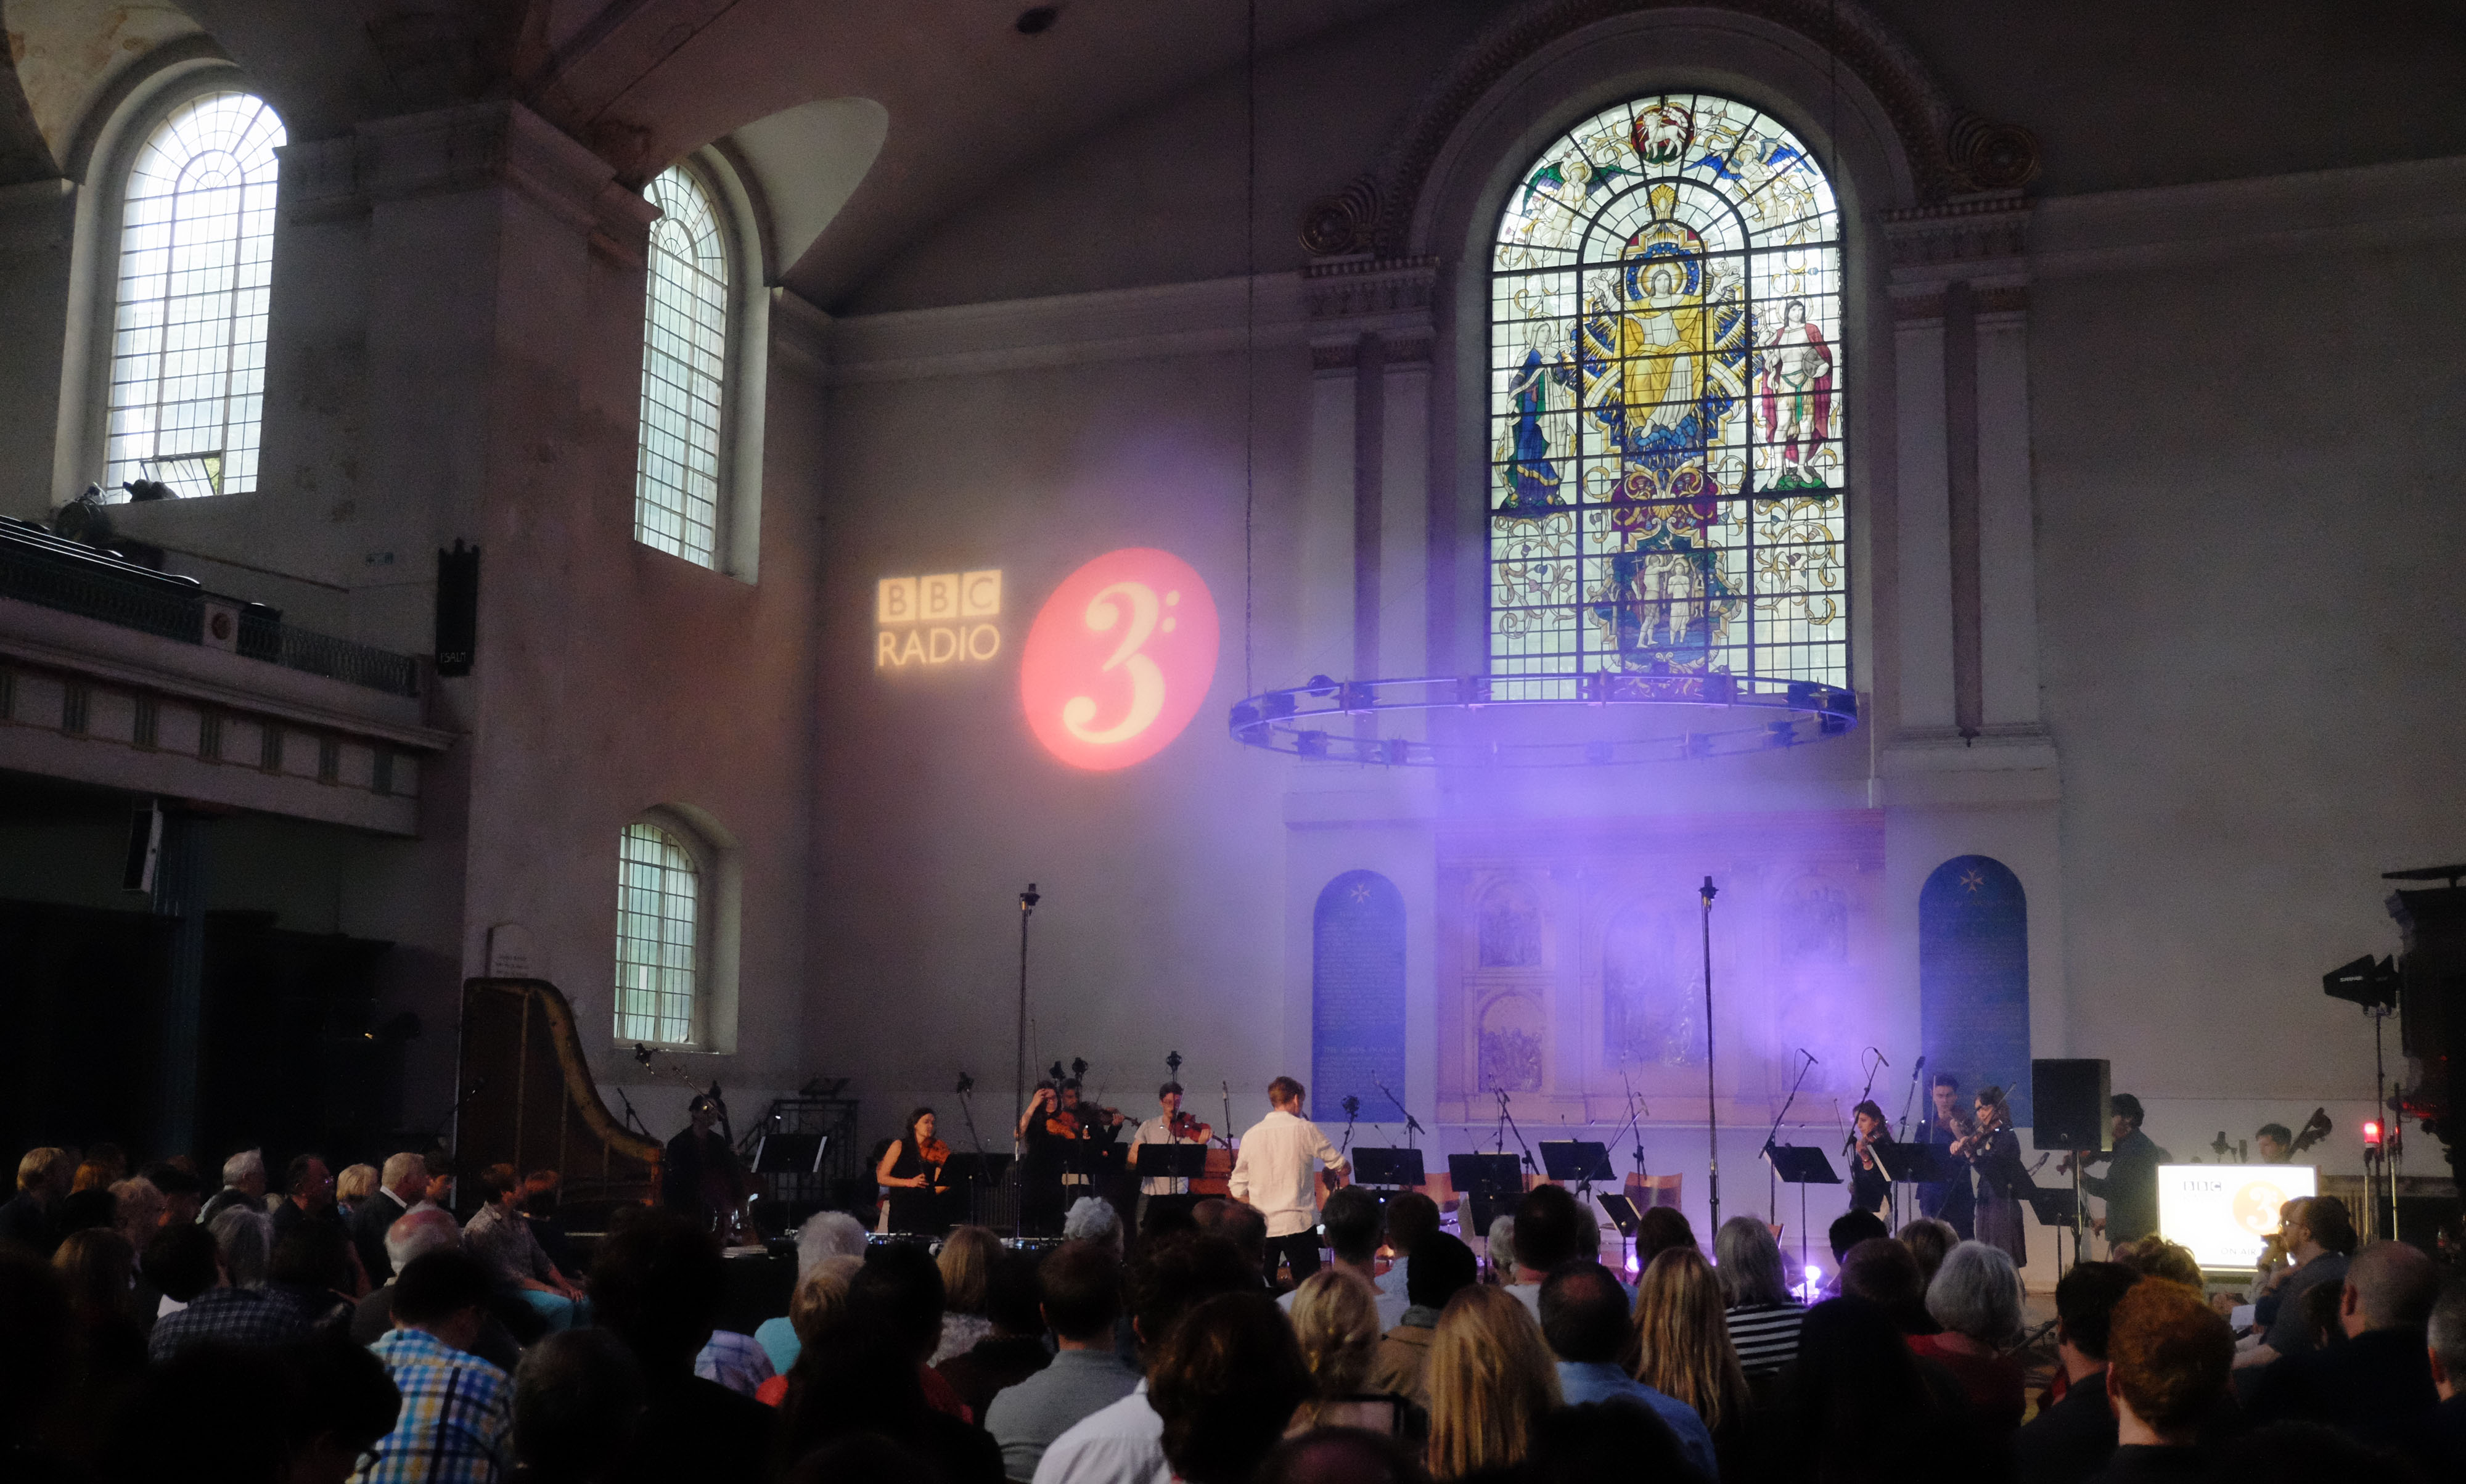 Live Recording of Radio 3's Open Ear at the Church of St John-at-Hackney in London on Thursday 30 June 2016. Photo by Mark Allan/BBC